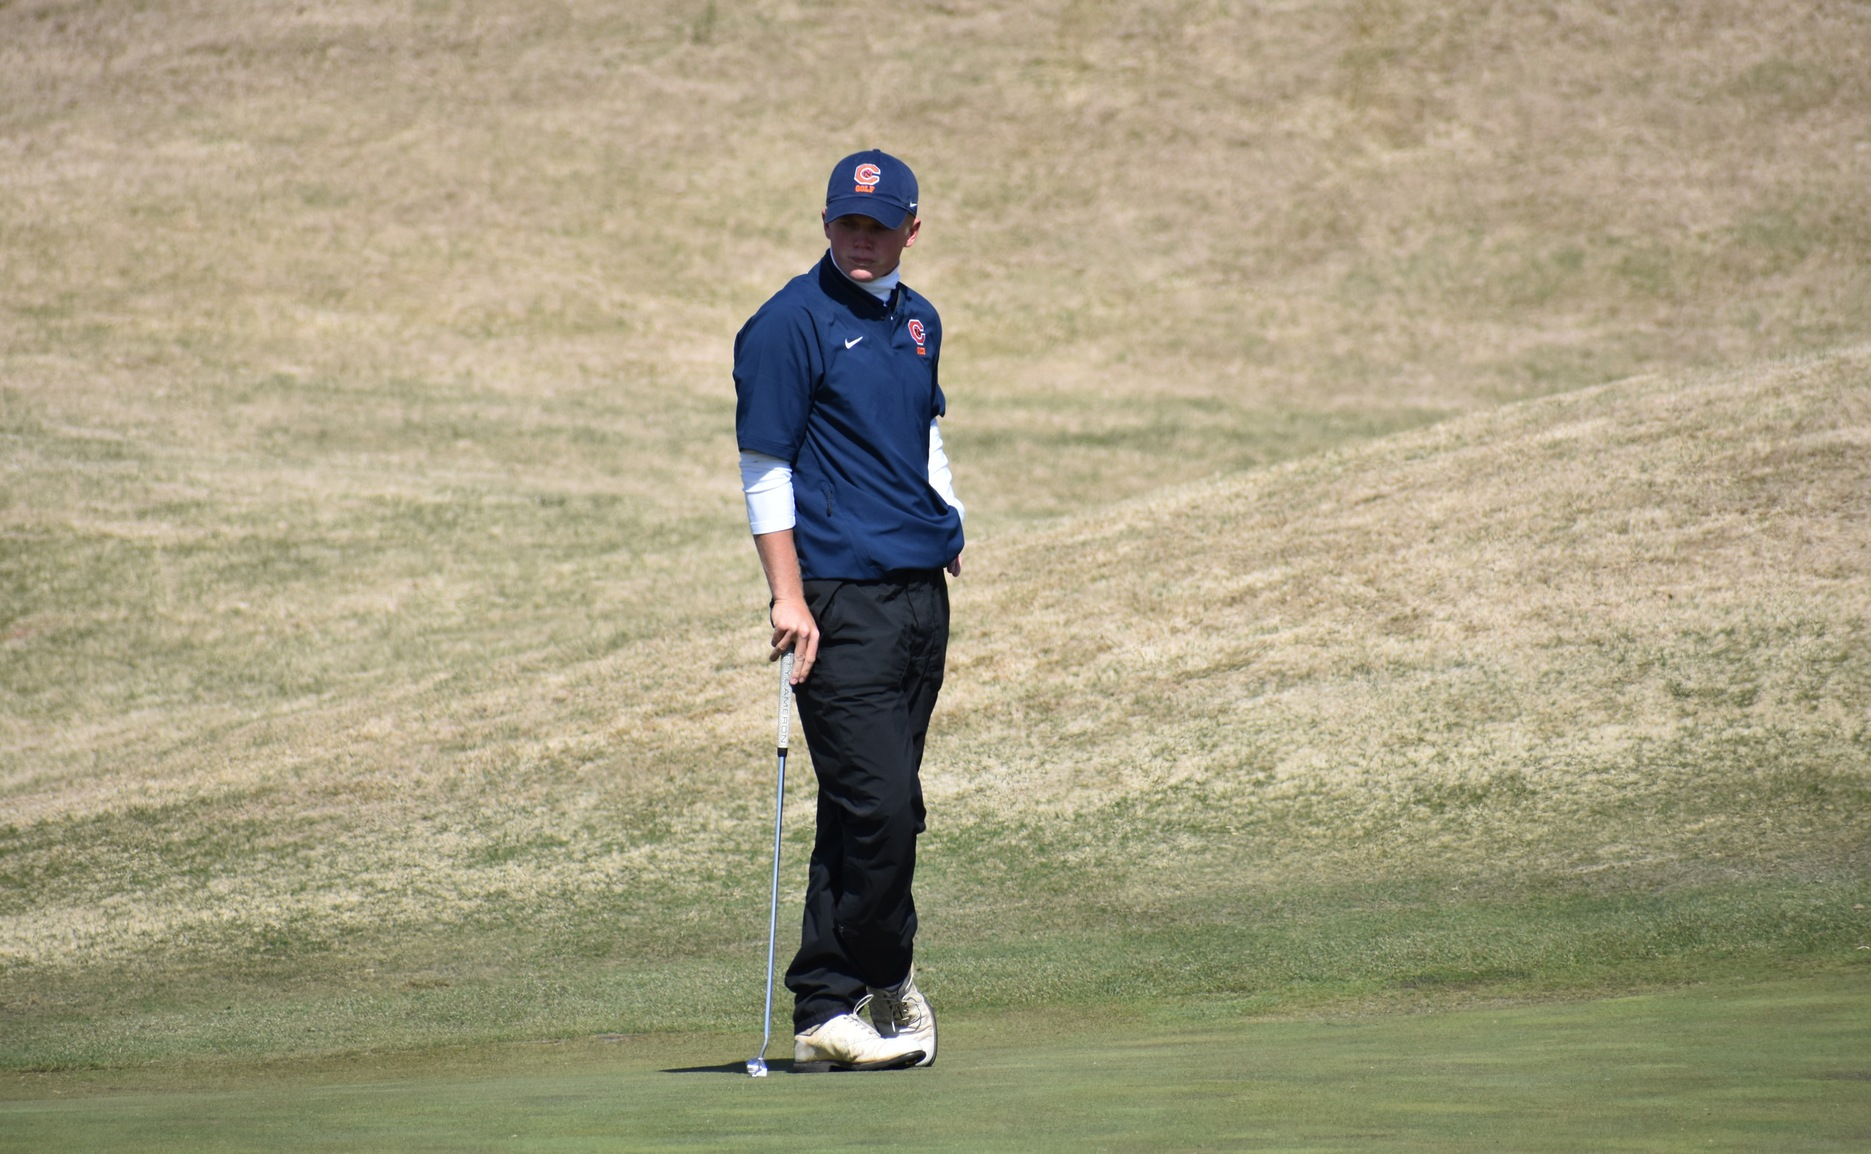 Forster sitting strong with match play looming at U.S. Amateur